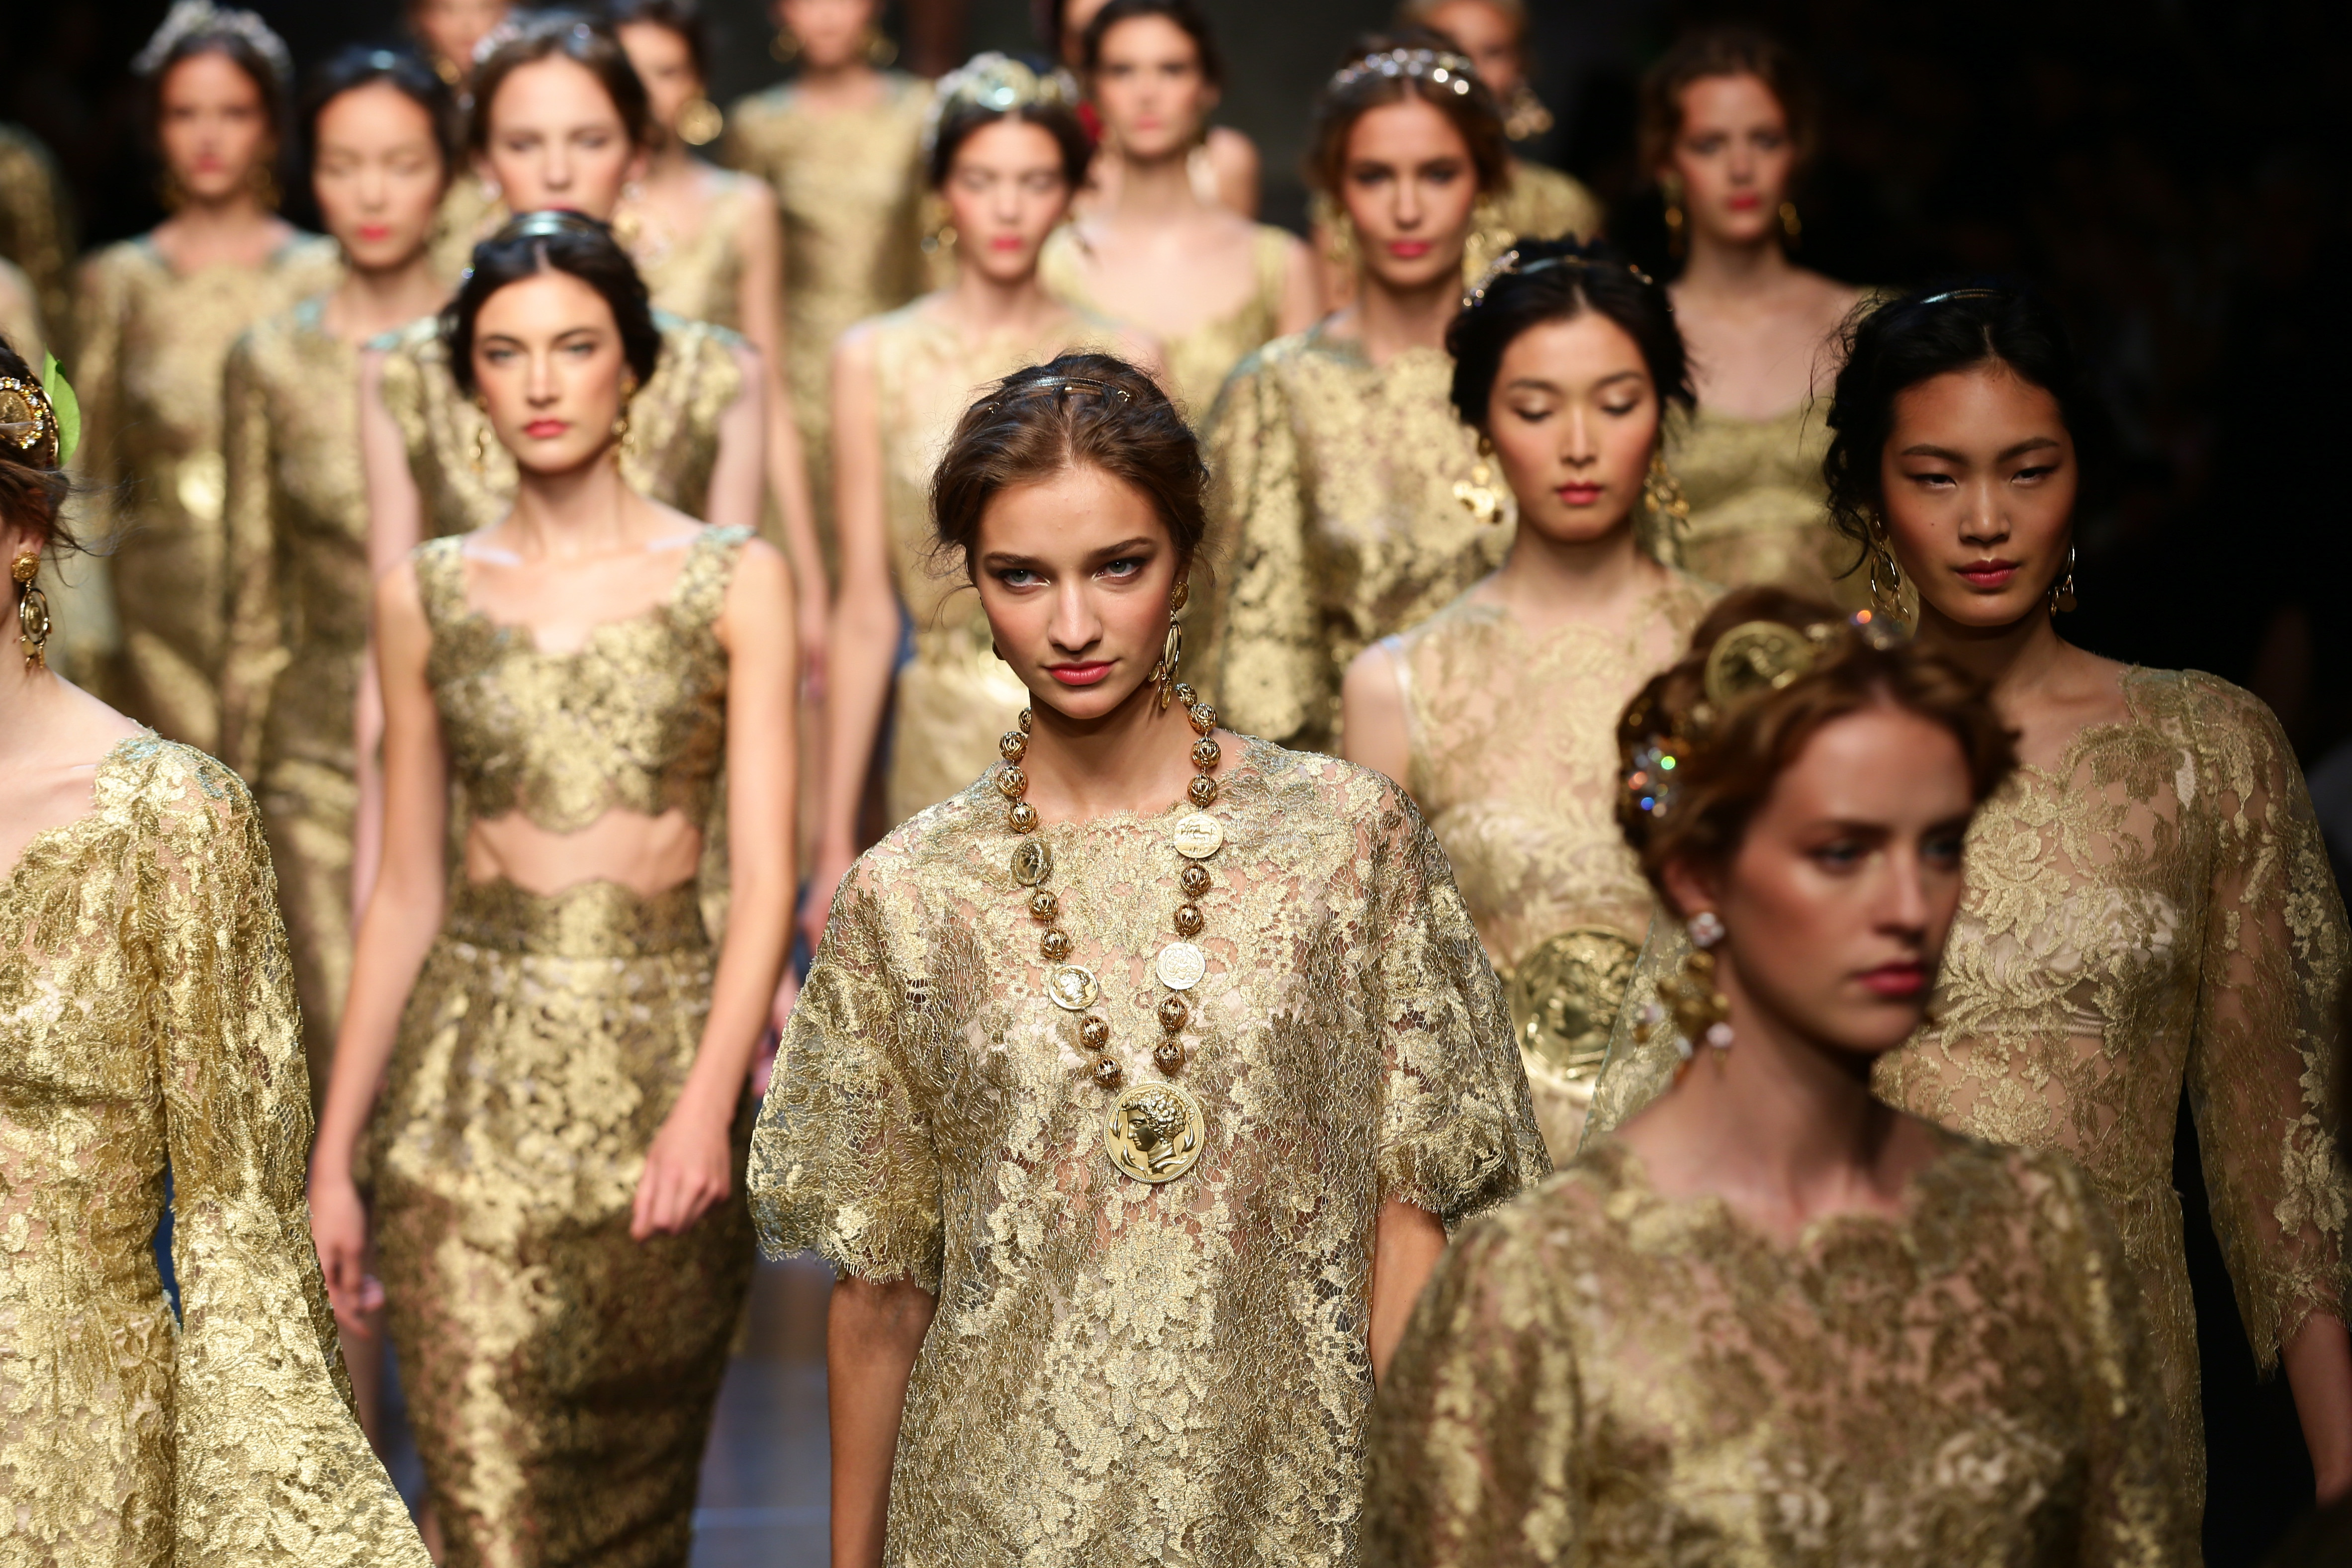 MILAN, ITALY - SEPTEMBER 22:  Models walk the runway during the Dolce & Gabbana show as part of Milan Fashion Week Womenswear Spring/Summer 2014 on September 22, 2013 in Milan, Italy.  (Photo by Vittorio Zunino Celotto/Getty Images)